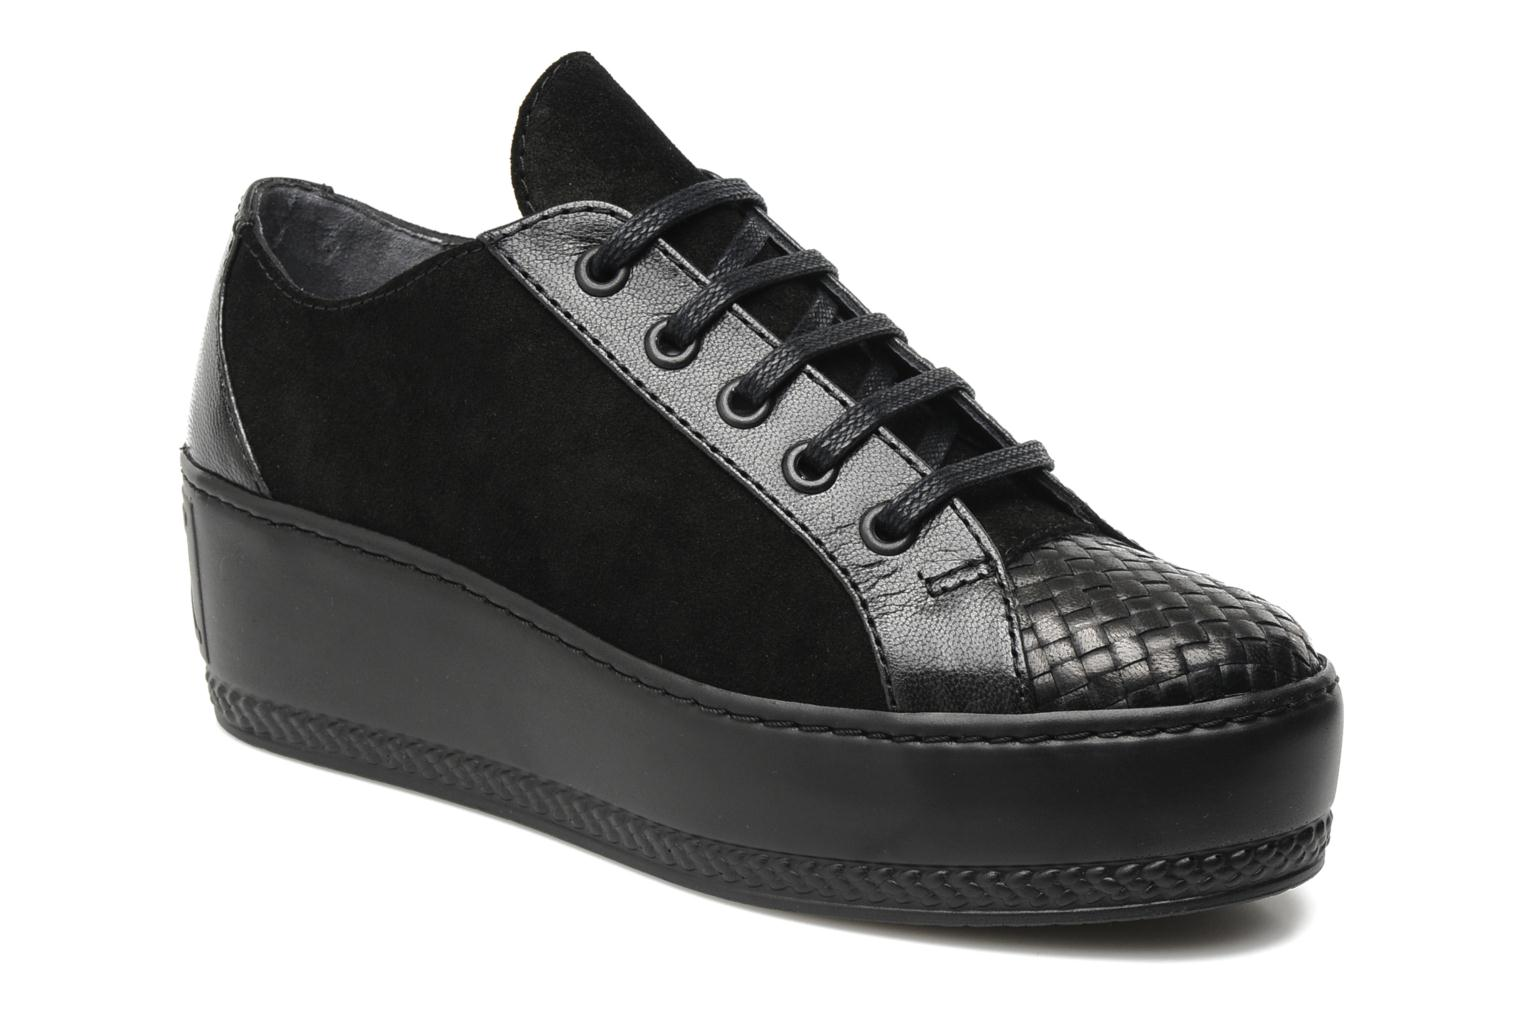 STEPHANE KÉLIAN Sneakers outlet big discount wide range of sale online outlet latest collections cheap real finishline Qf02I7